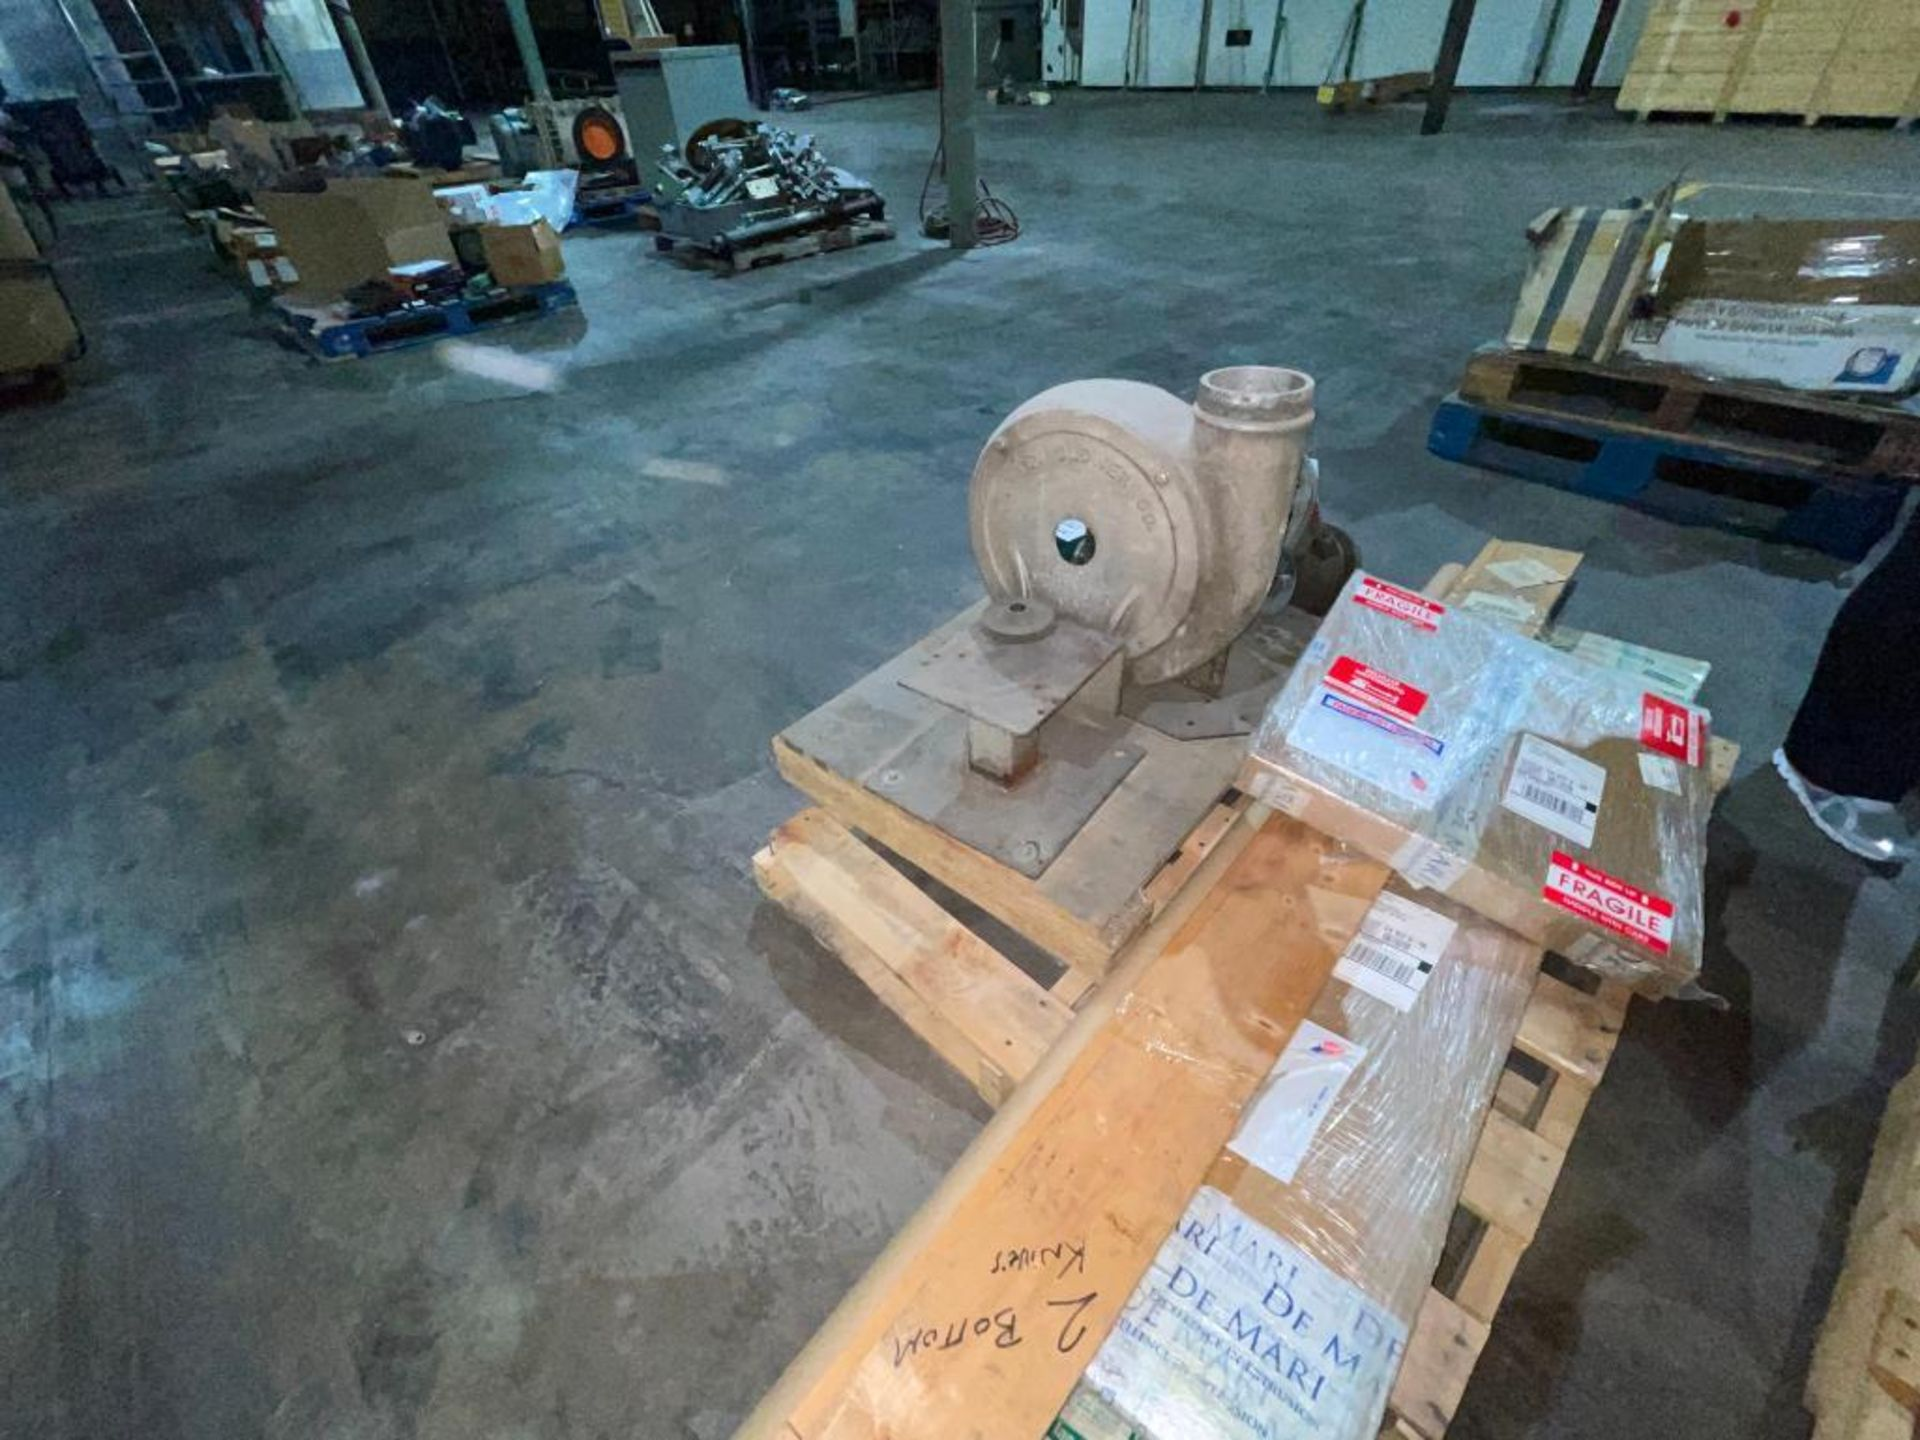 pallet of new and rebuilt knives - Image 5 of 7